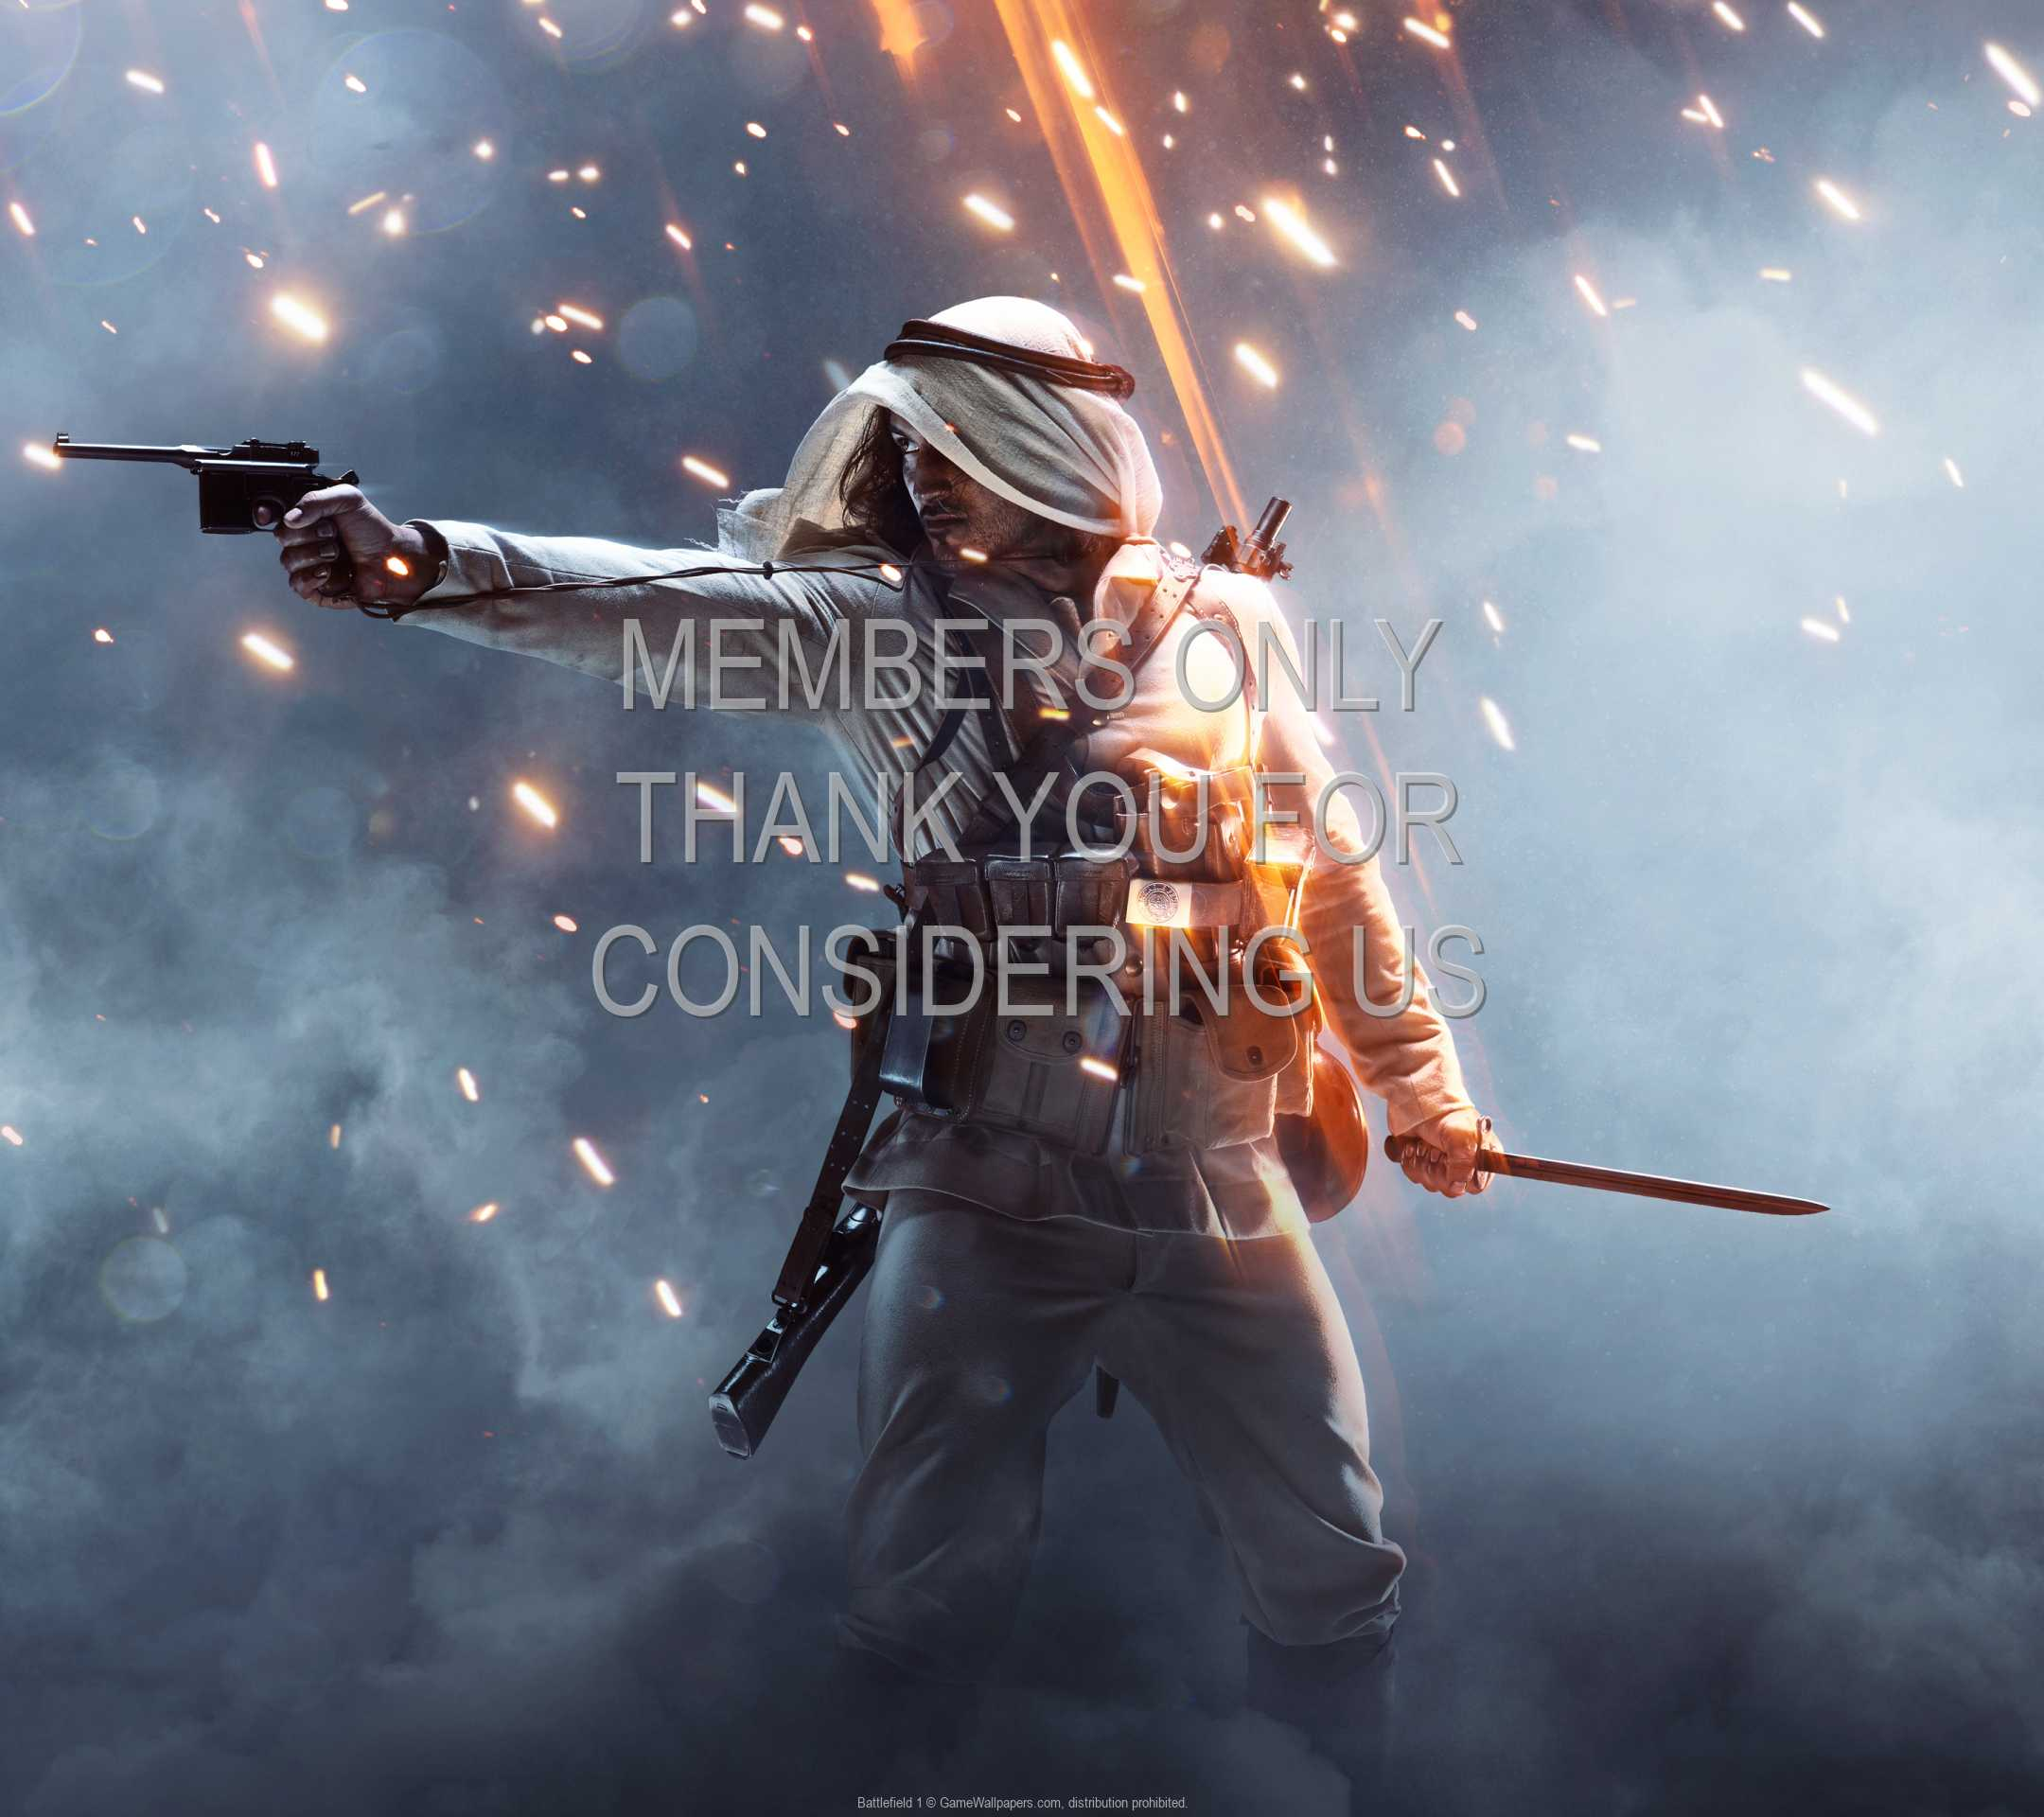 Battlefield 1 1080p Horizontal Mobile wallpaper or background 04